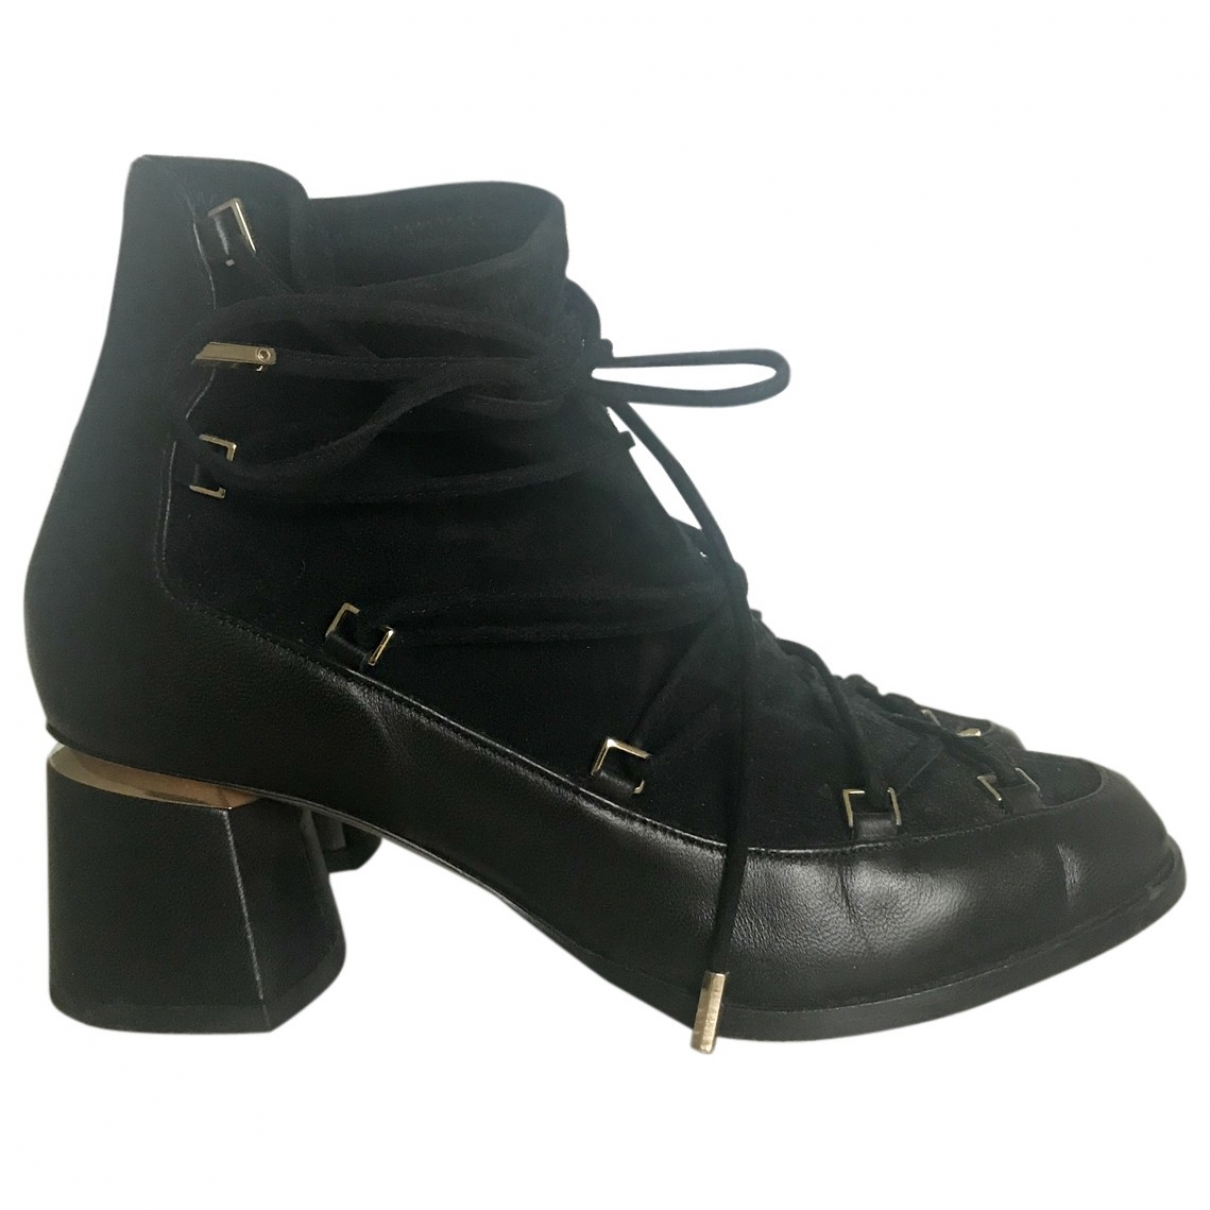 Nicholas Kirkwood N Black Leather Ankle boots for Women 35 EU